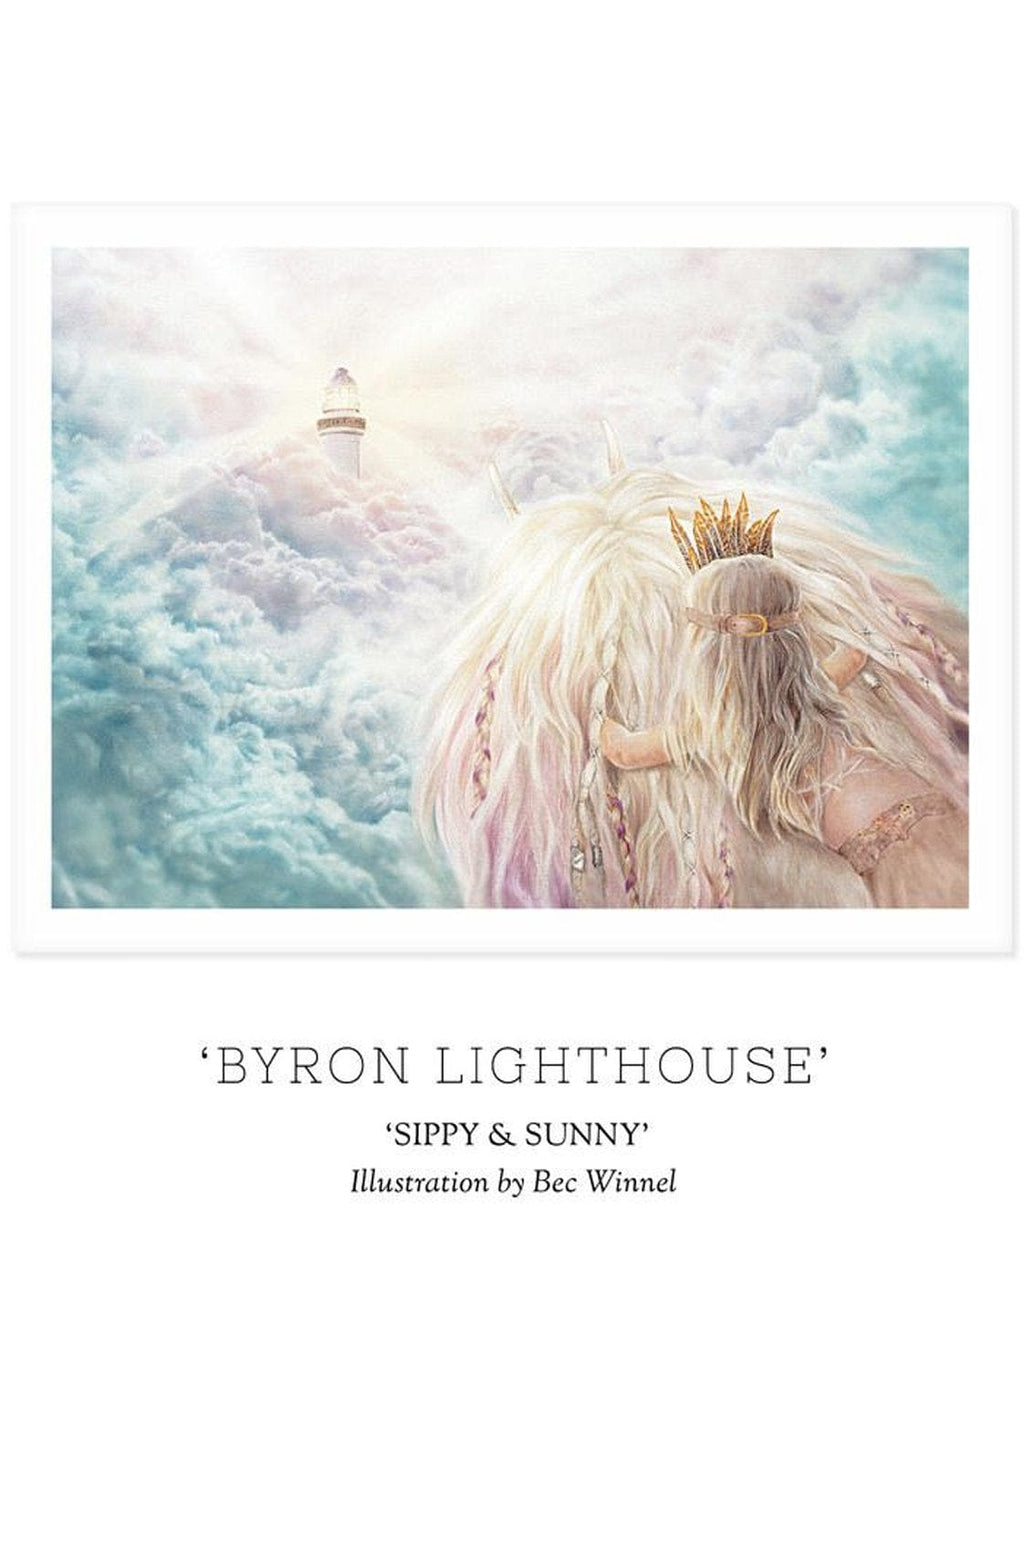 Unclebearskin Productions, SIPPY & SUNNY - 'BYRON LIGHTHOUSE' Print